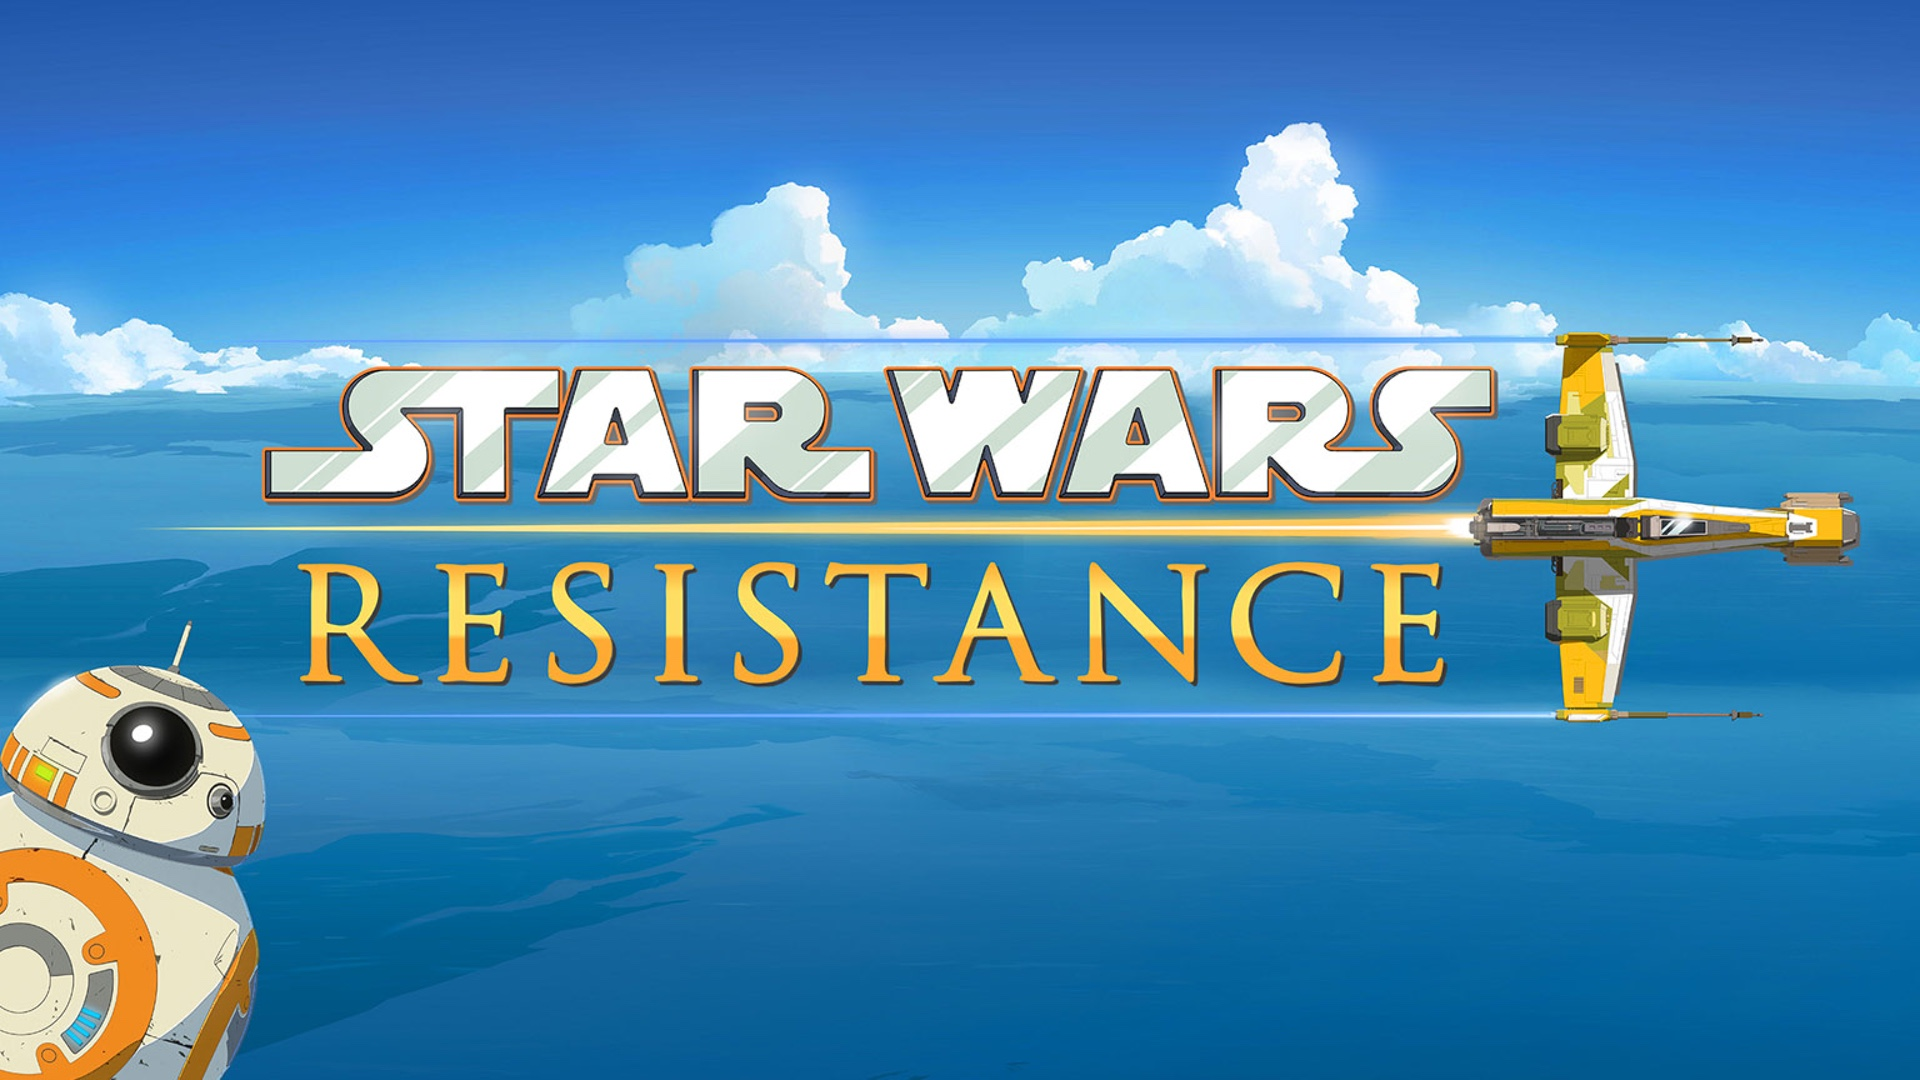 Star Wars Resistance: Disney releases first trailer, plot details for animated series